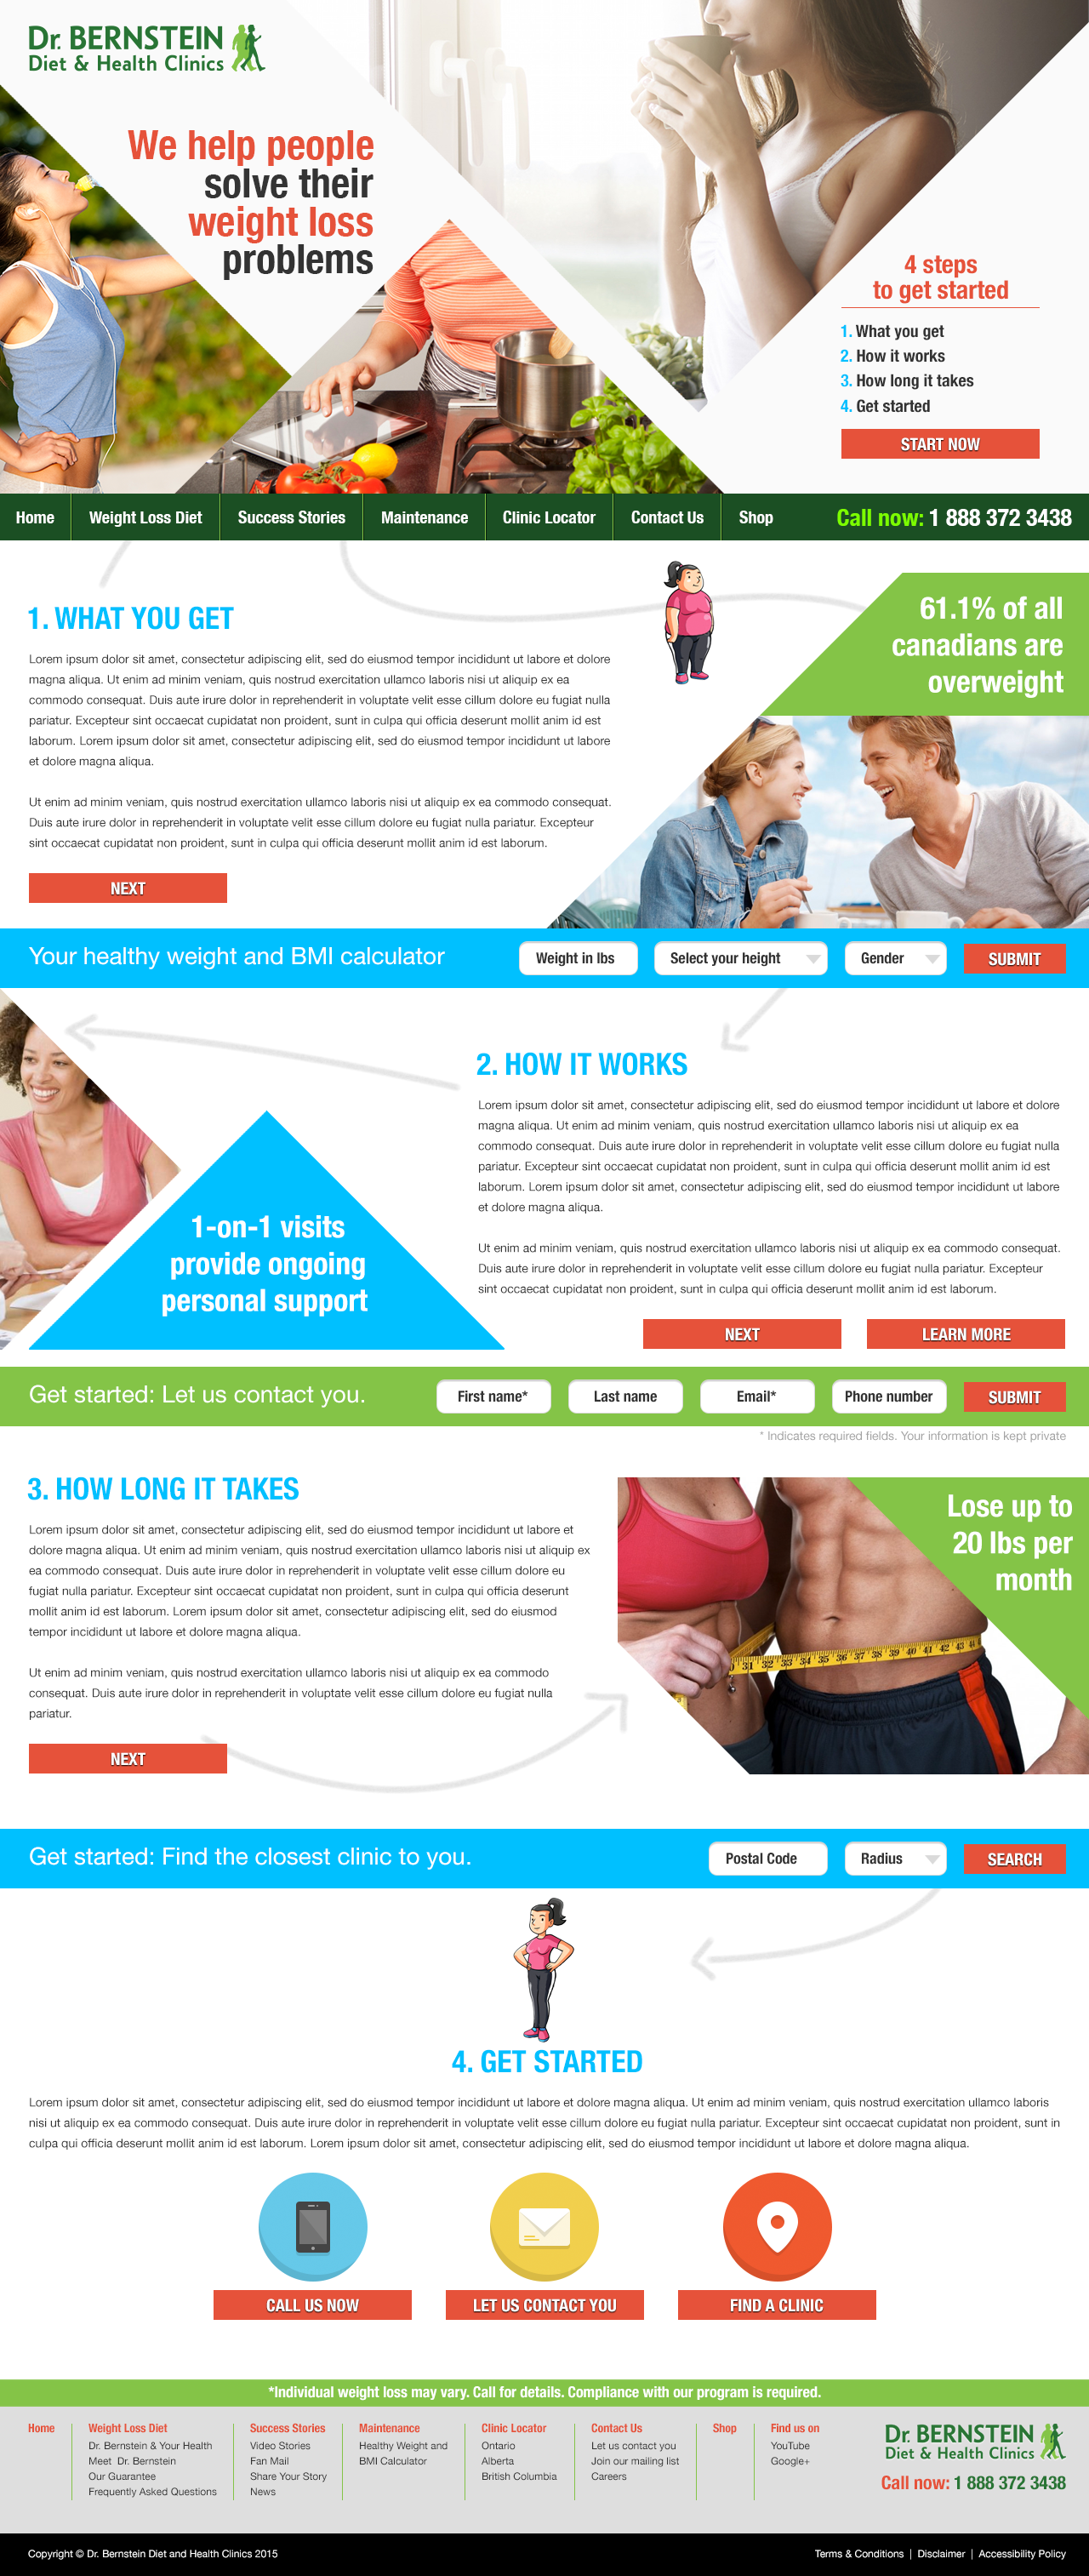 Bernstein Diet and Health Clinics – Website Redesign Proposal